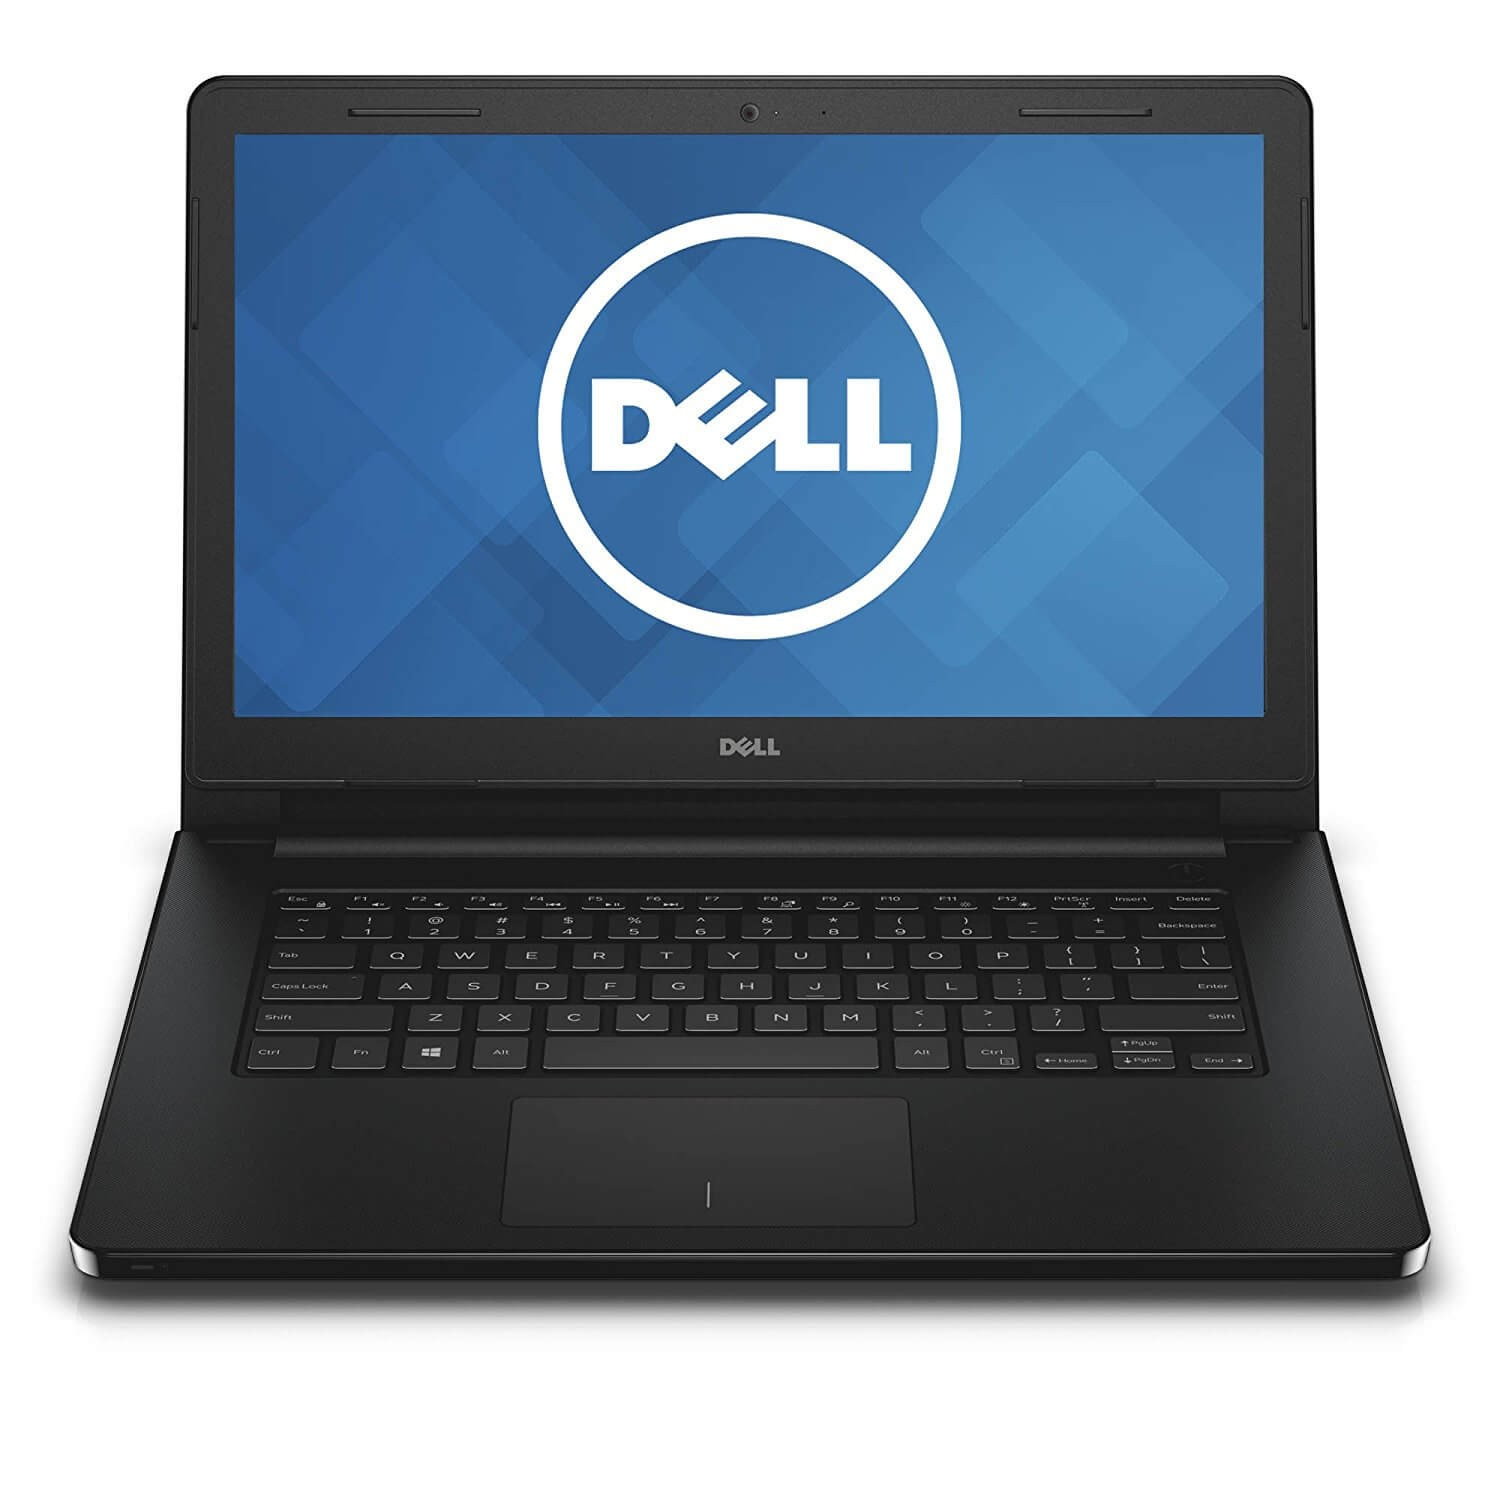 Dell Inspiron 3462 14-inch Intel Celeron N3350 - Black 1